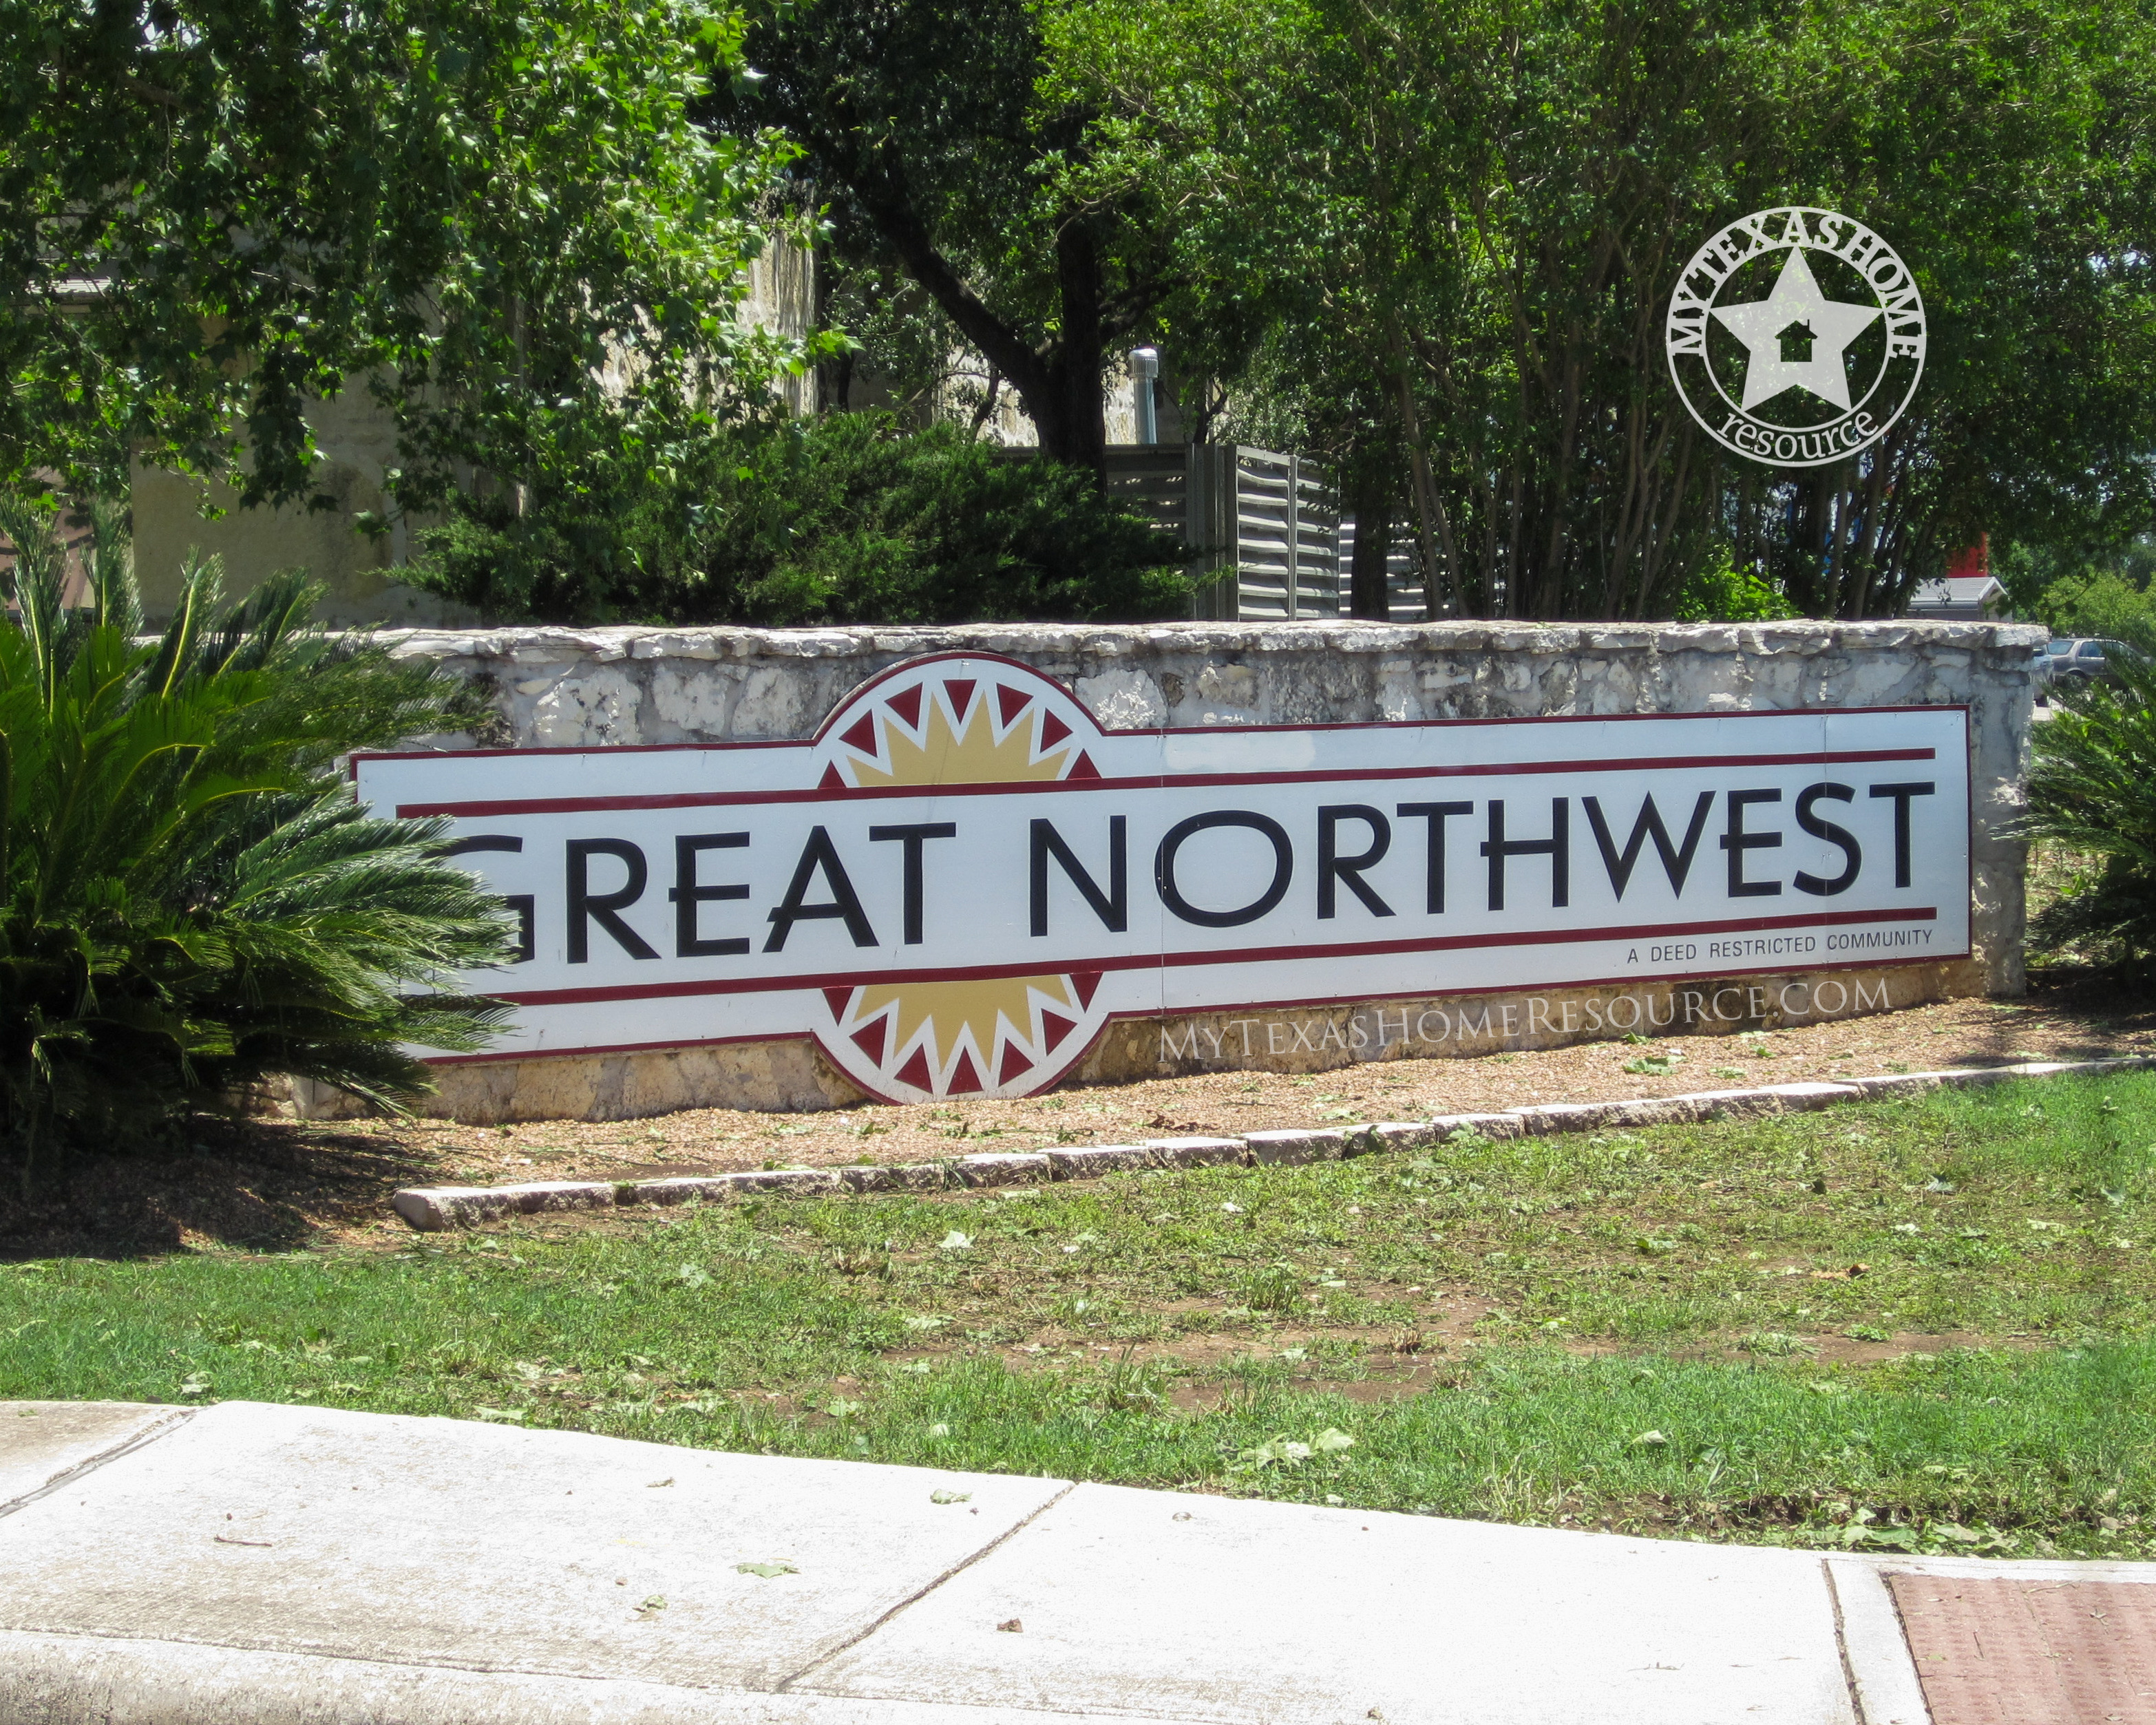 Great Northwest Community